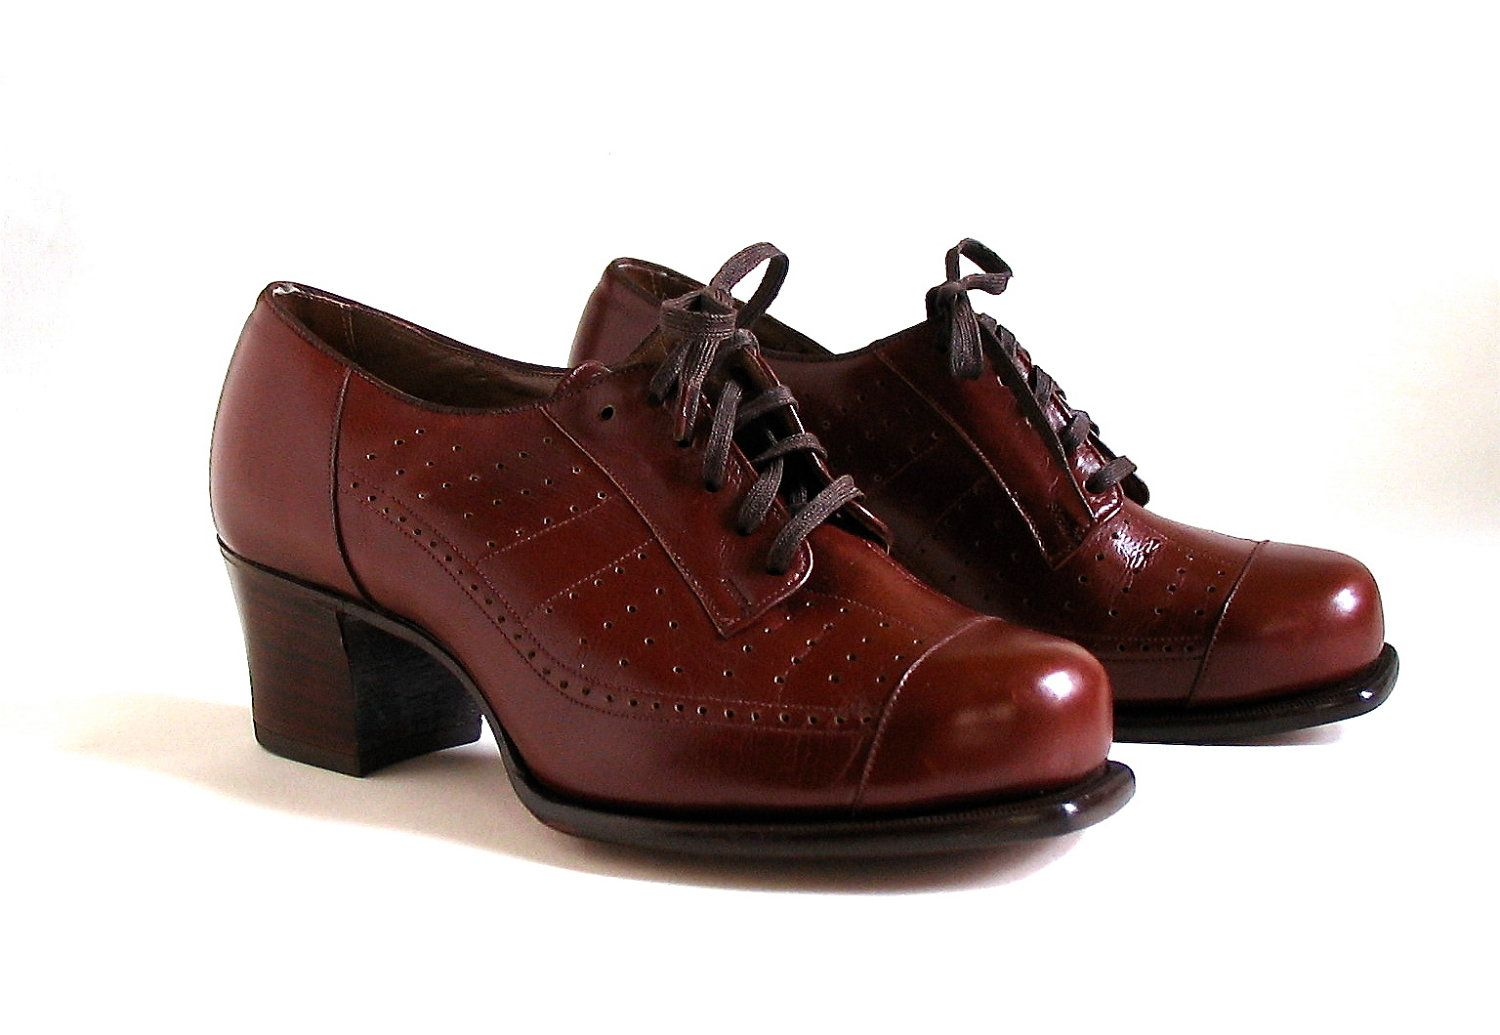 Vintage Women Shoes Oxford LaceUp's Unworn By